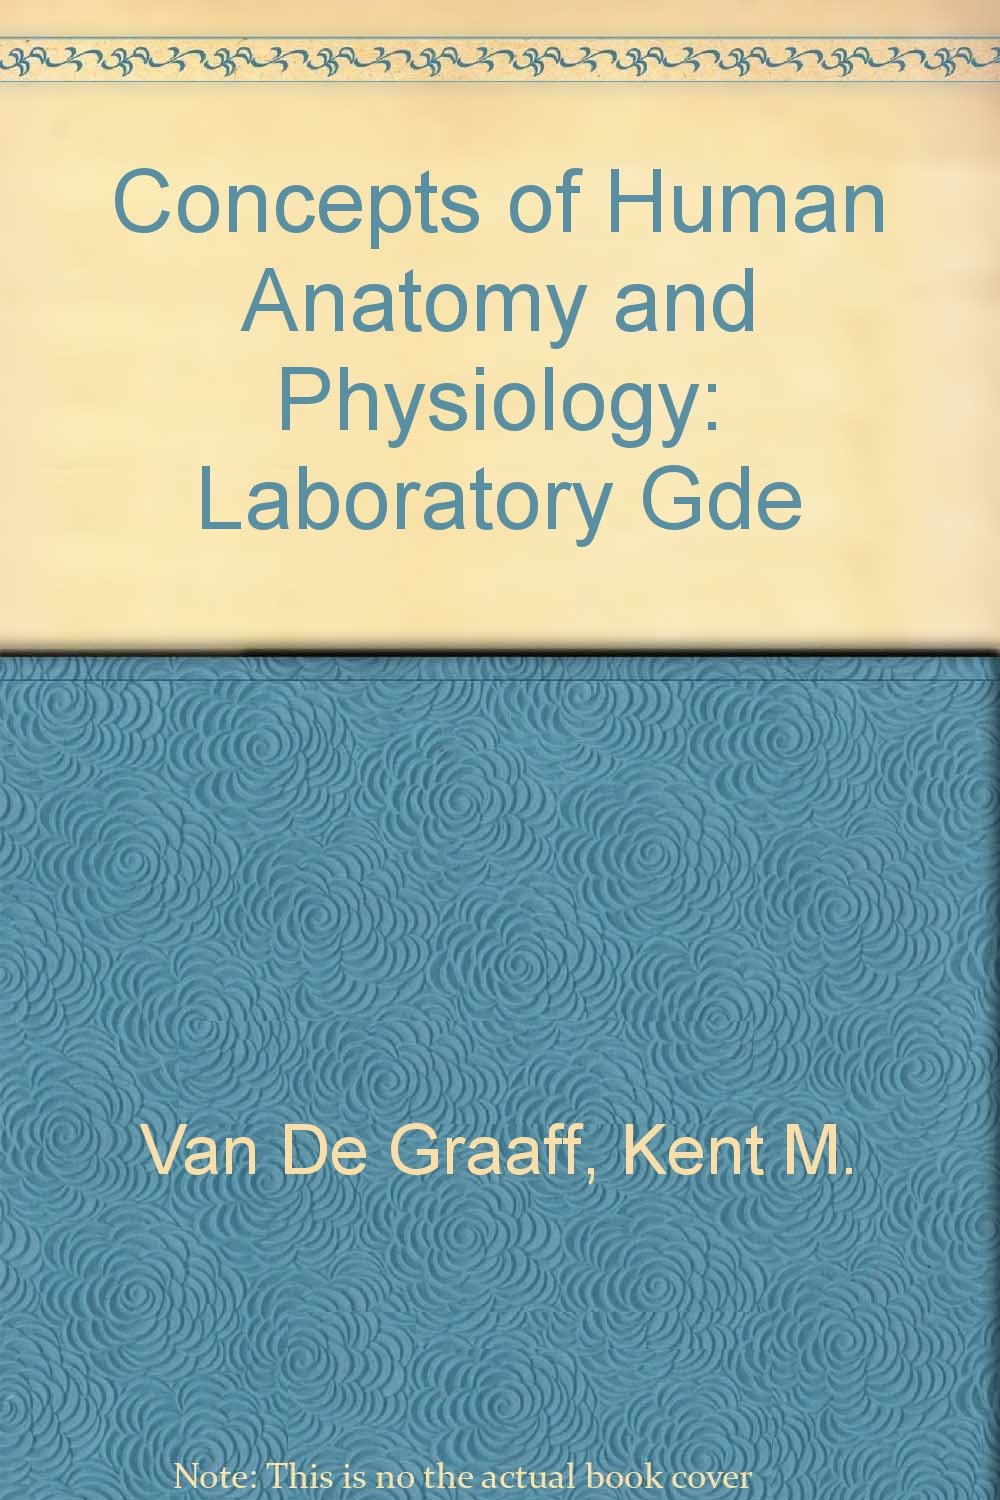 Concepts Of Human Anatomy And Physiology Laboratory Gde Kent M